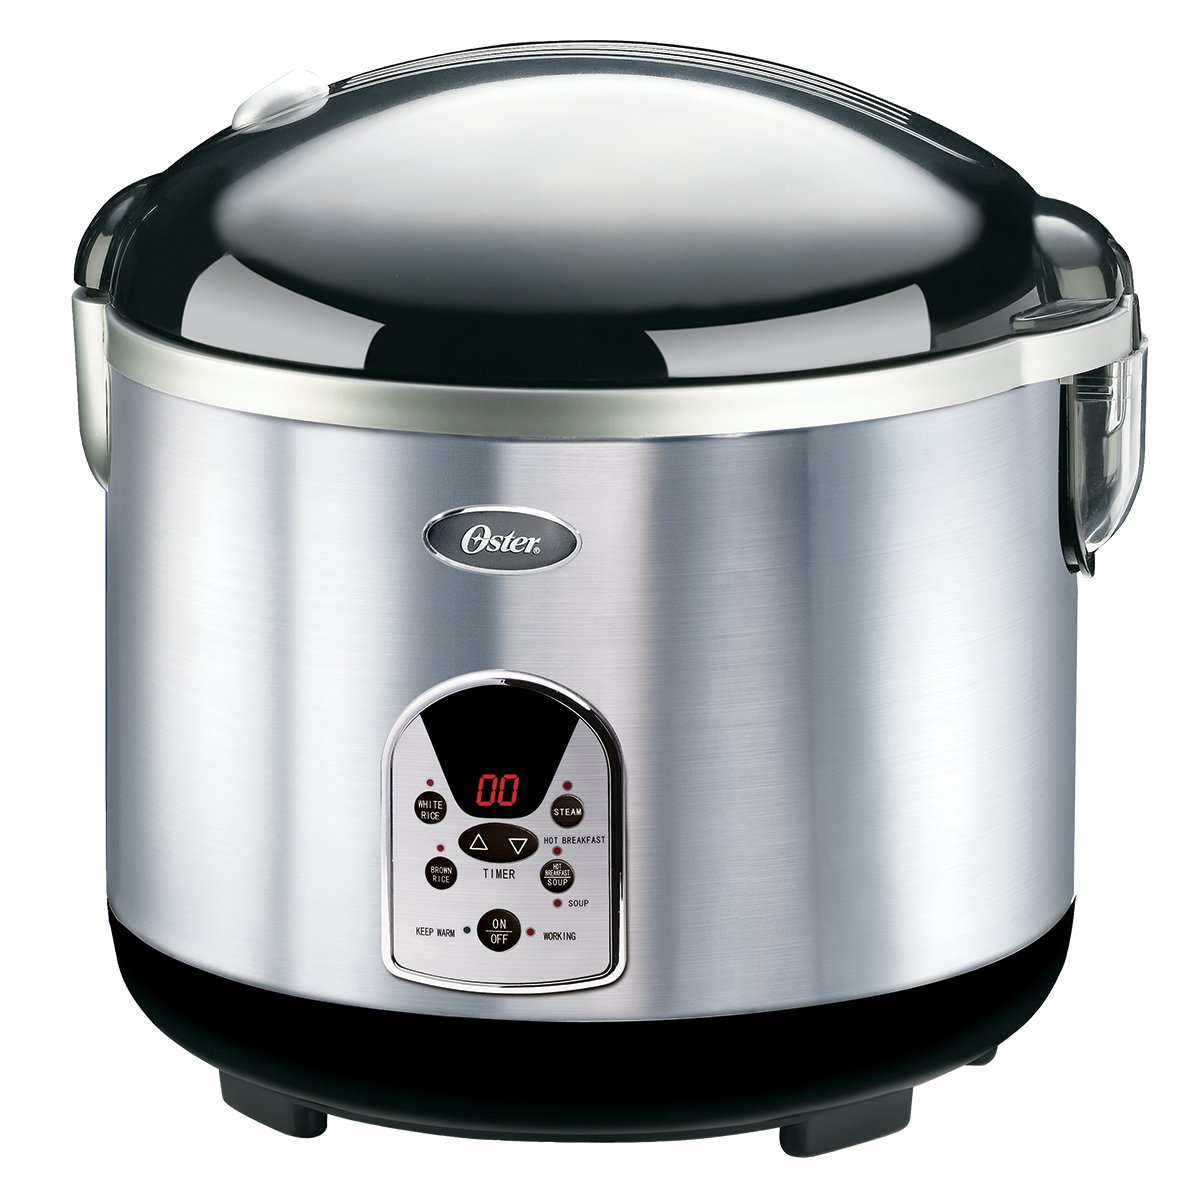 Amazon Oster 20 Cup Digital Rice Cooker Blackstainless Steel